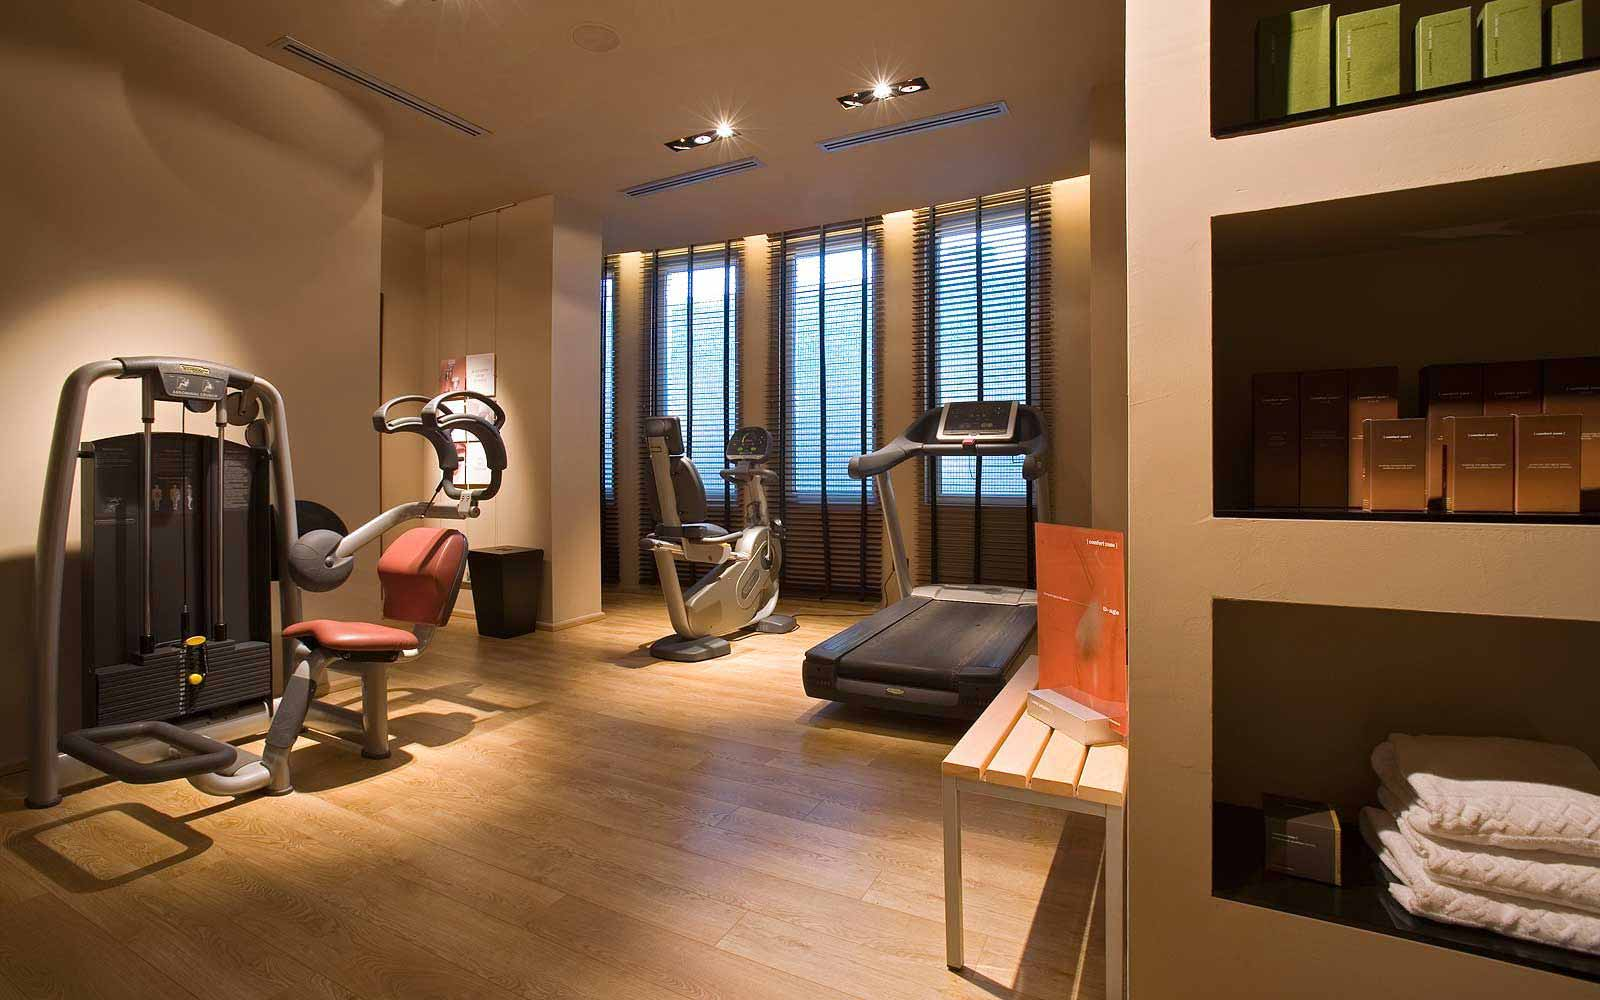 Gym at La Coluccia Hotel & Beach Club